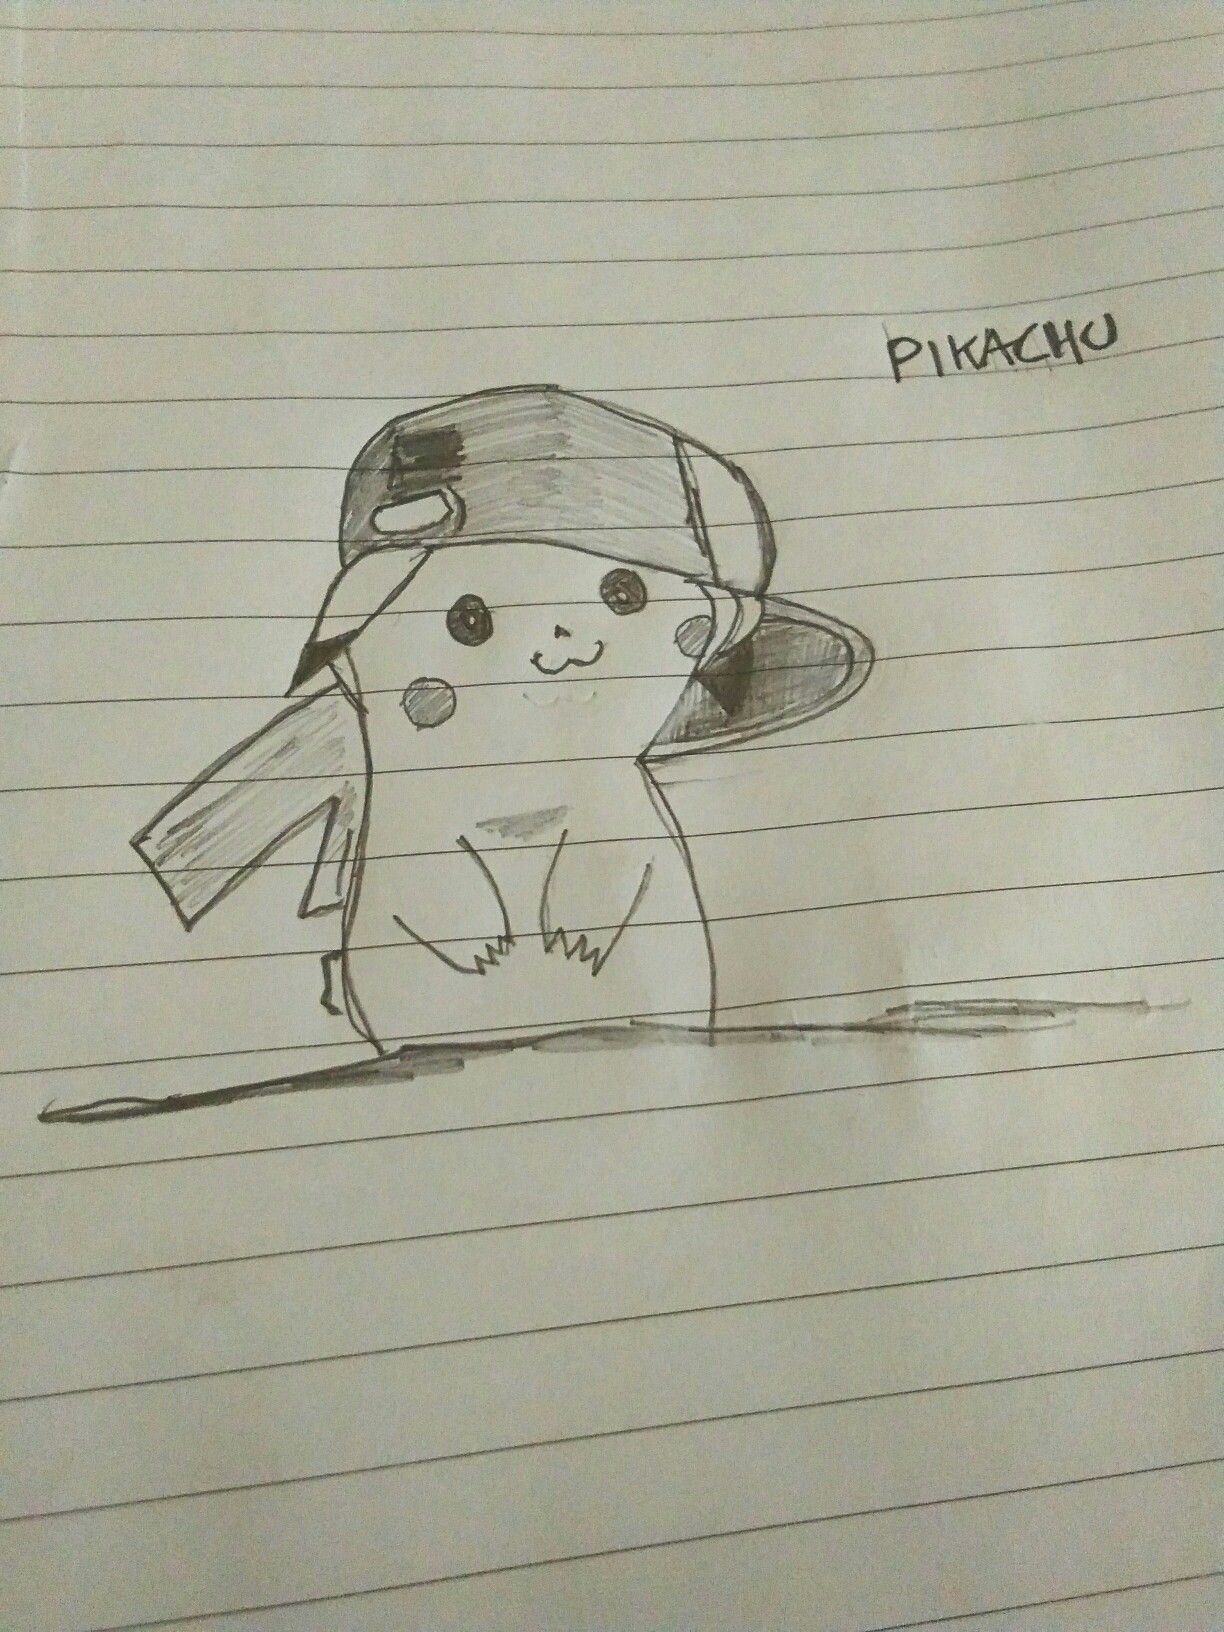 Pikachu #pencil #drawing #cartoon #charecter #pikachu #art ...